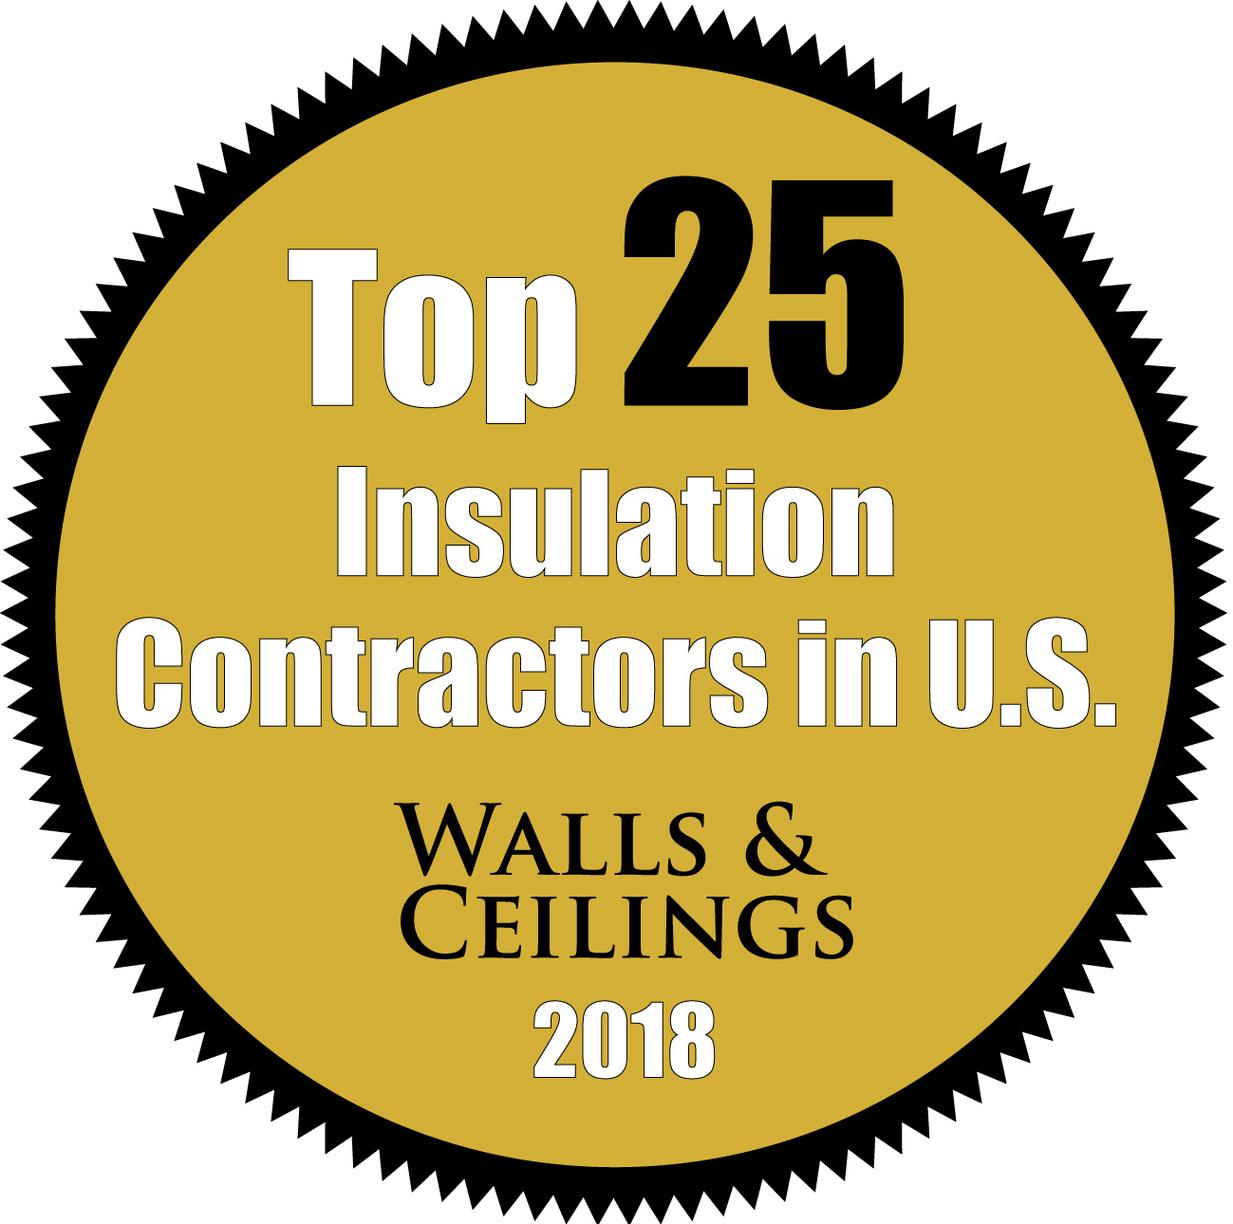 Top 25 Insulation Contractor in The U.S. - Walls & Ceilings Magazine 2018